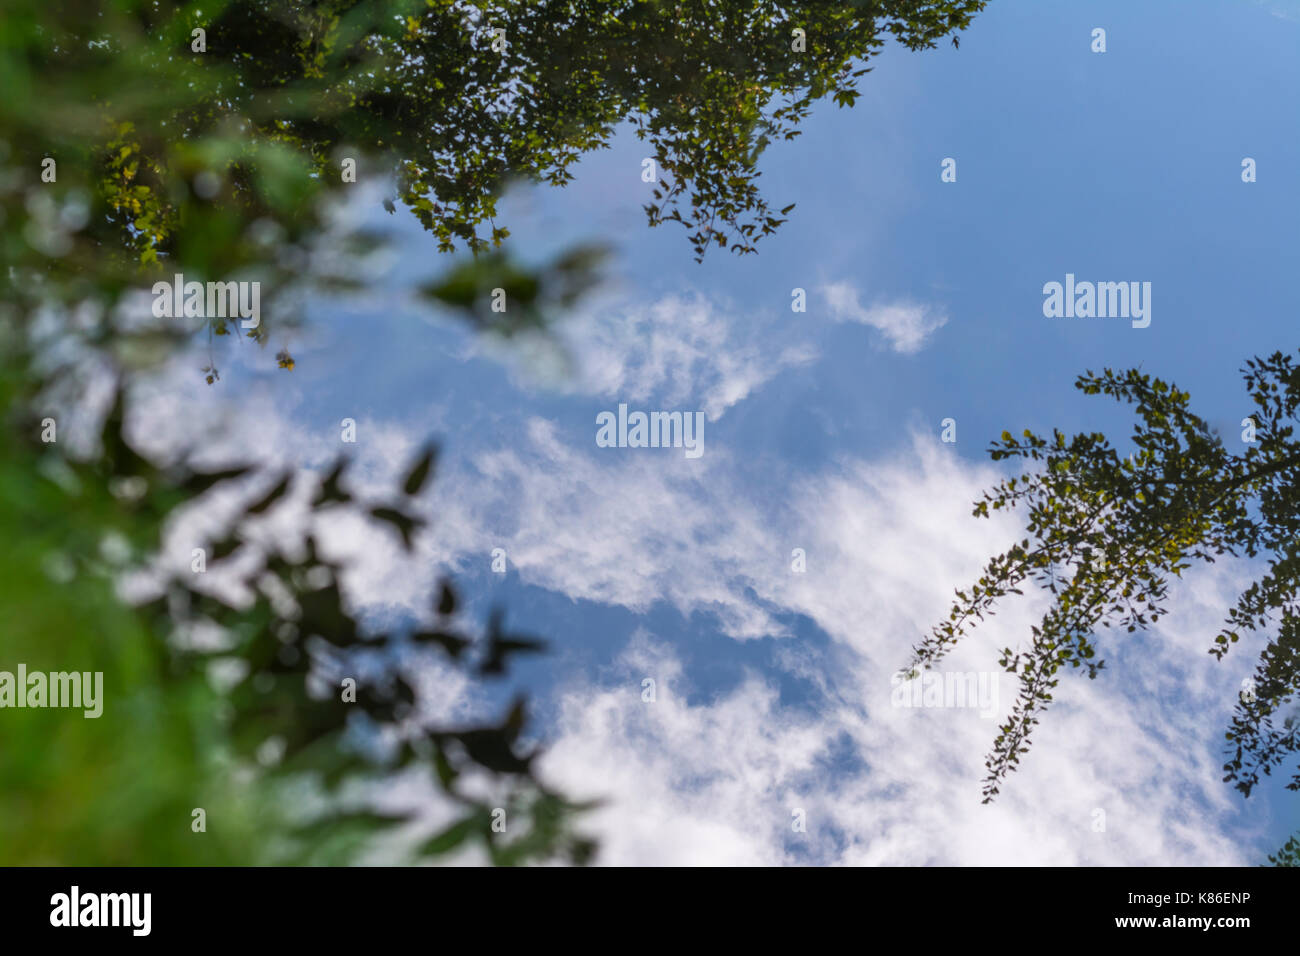 Trees and blue sky reflecting in still water on an Autumn day in the UK. - Stock Image